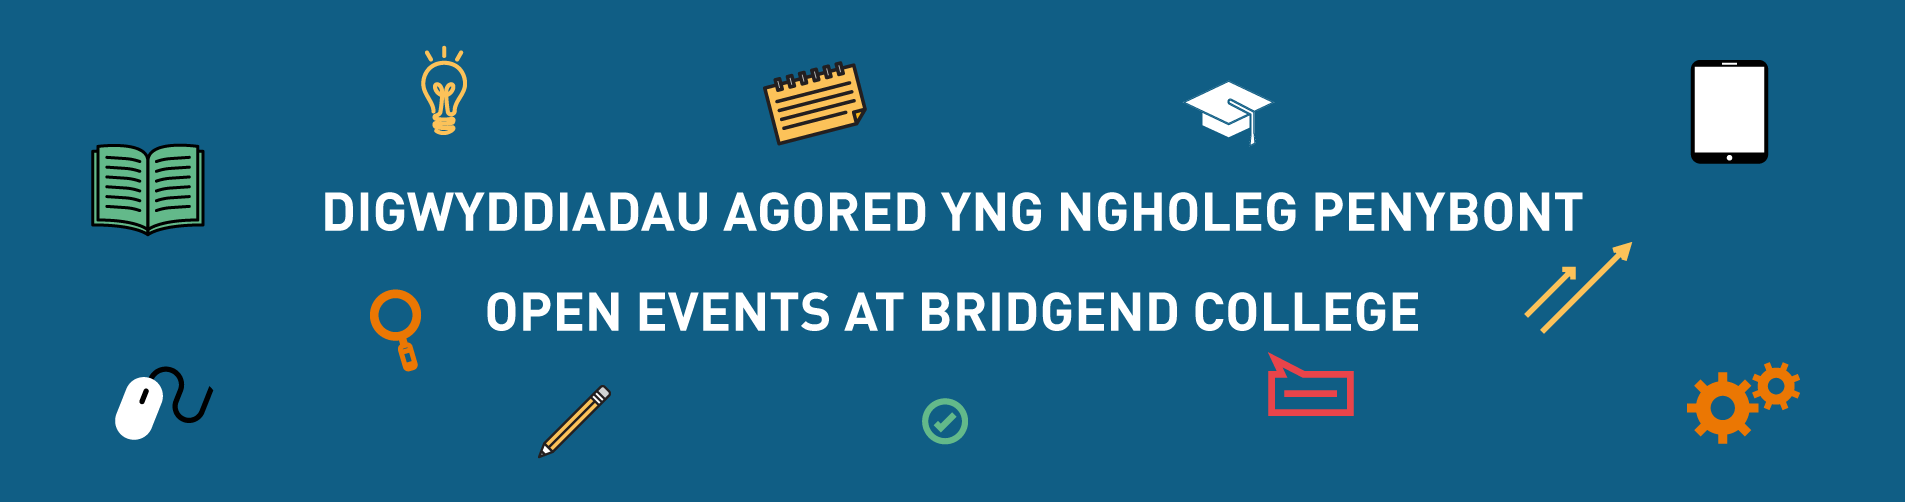 Open events at Bridgend College